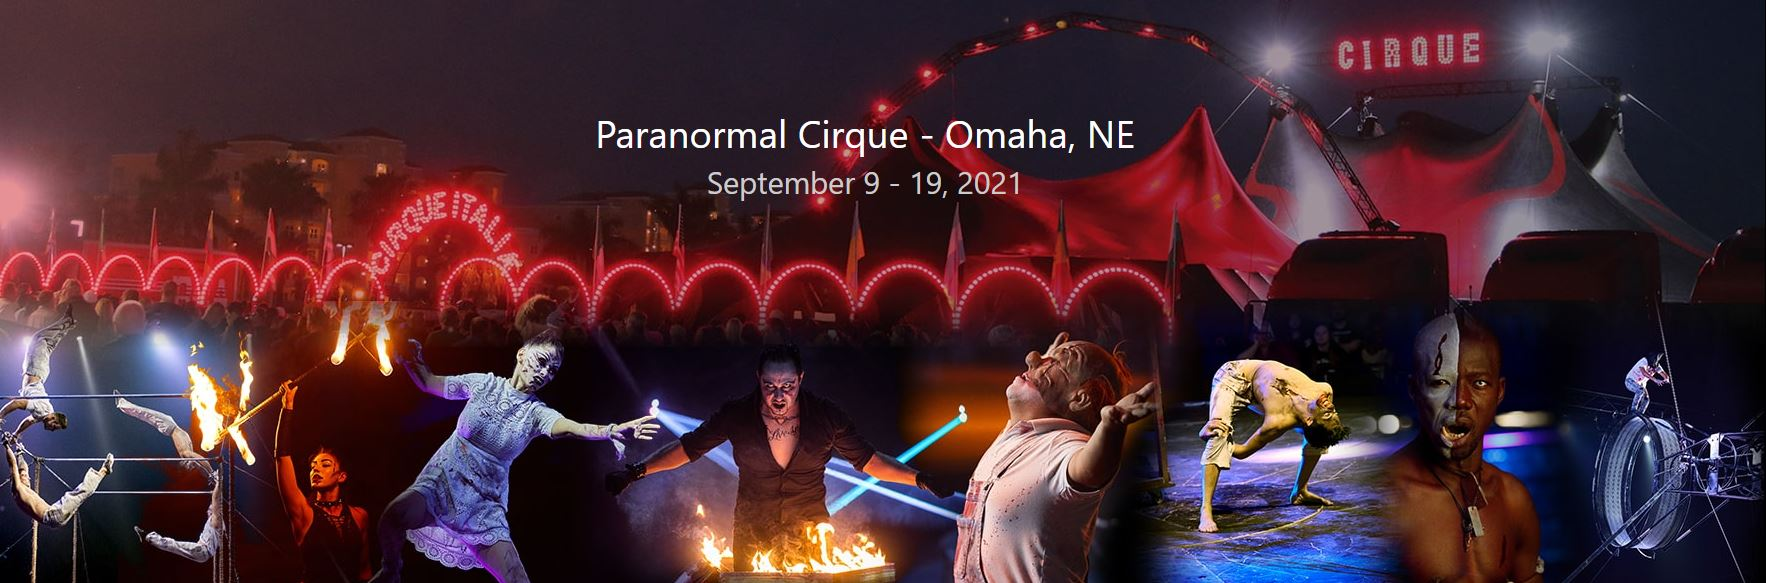 PARANORMAL EVENT